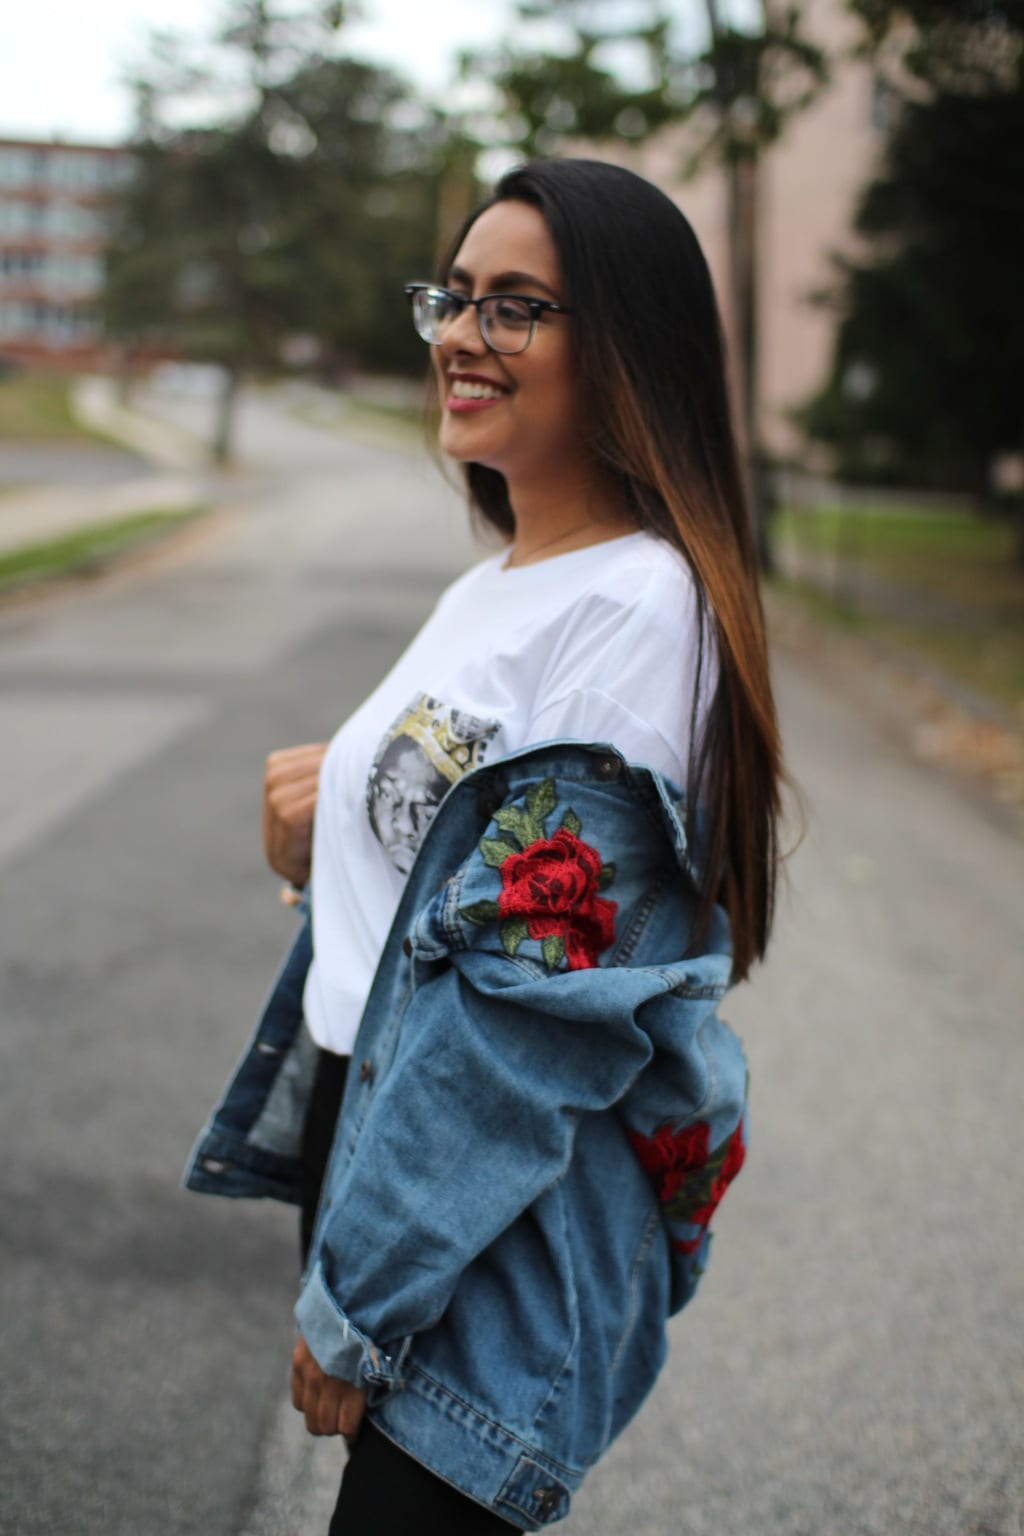 This oversized, distressed denim jacket is embroidered with red roses with green leaves. She wears it with a simple white tee.